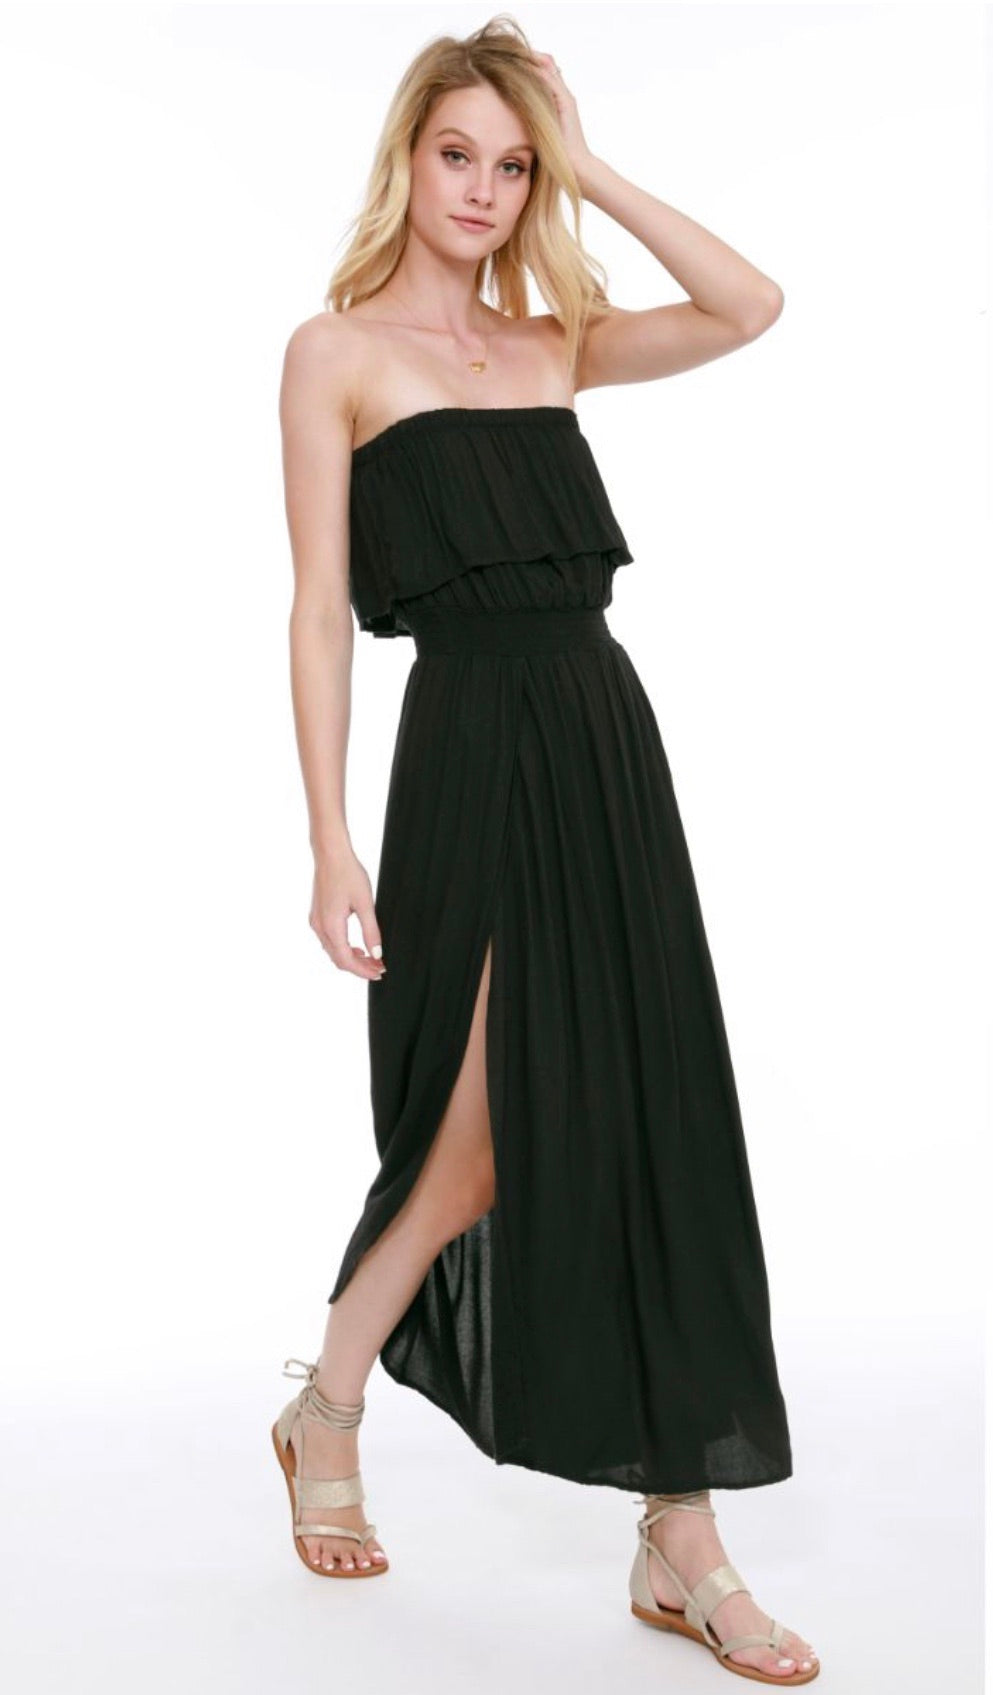 ALESSANDRA STRAPLESS DRESS